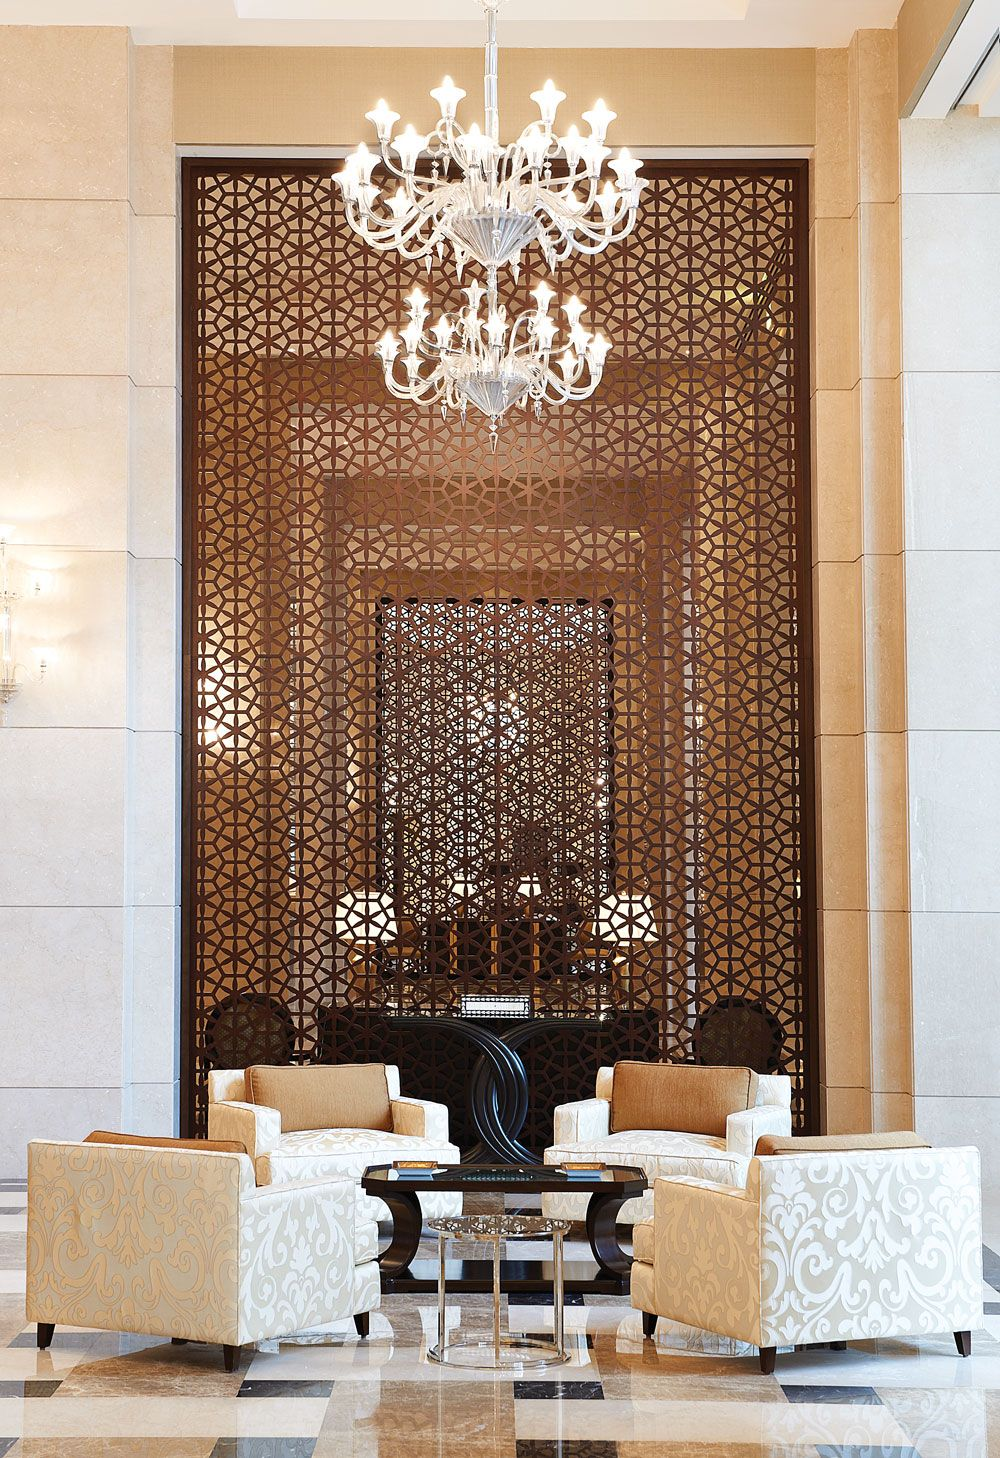 Lebanese restaurant interior design restaurants with for Hotel home decor